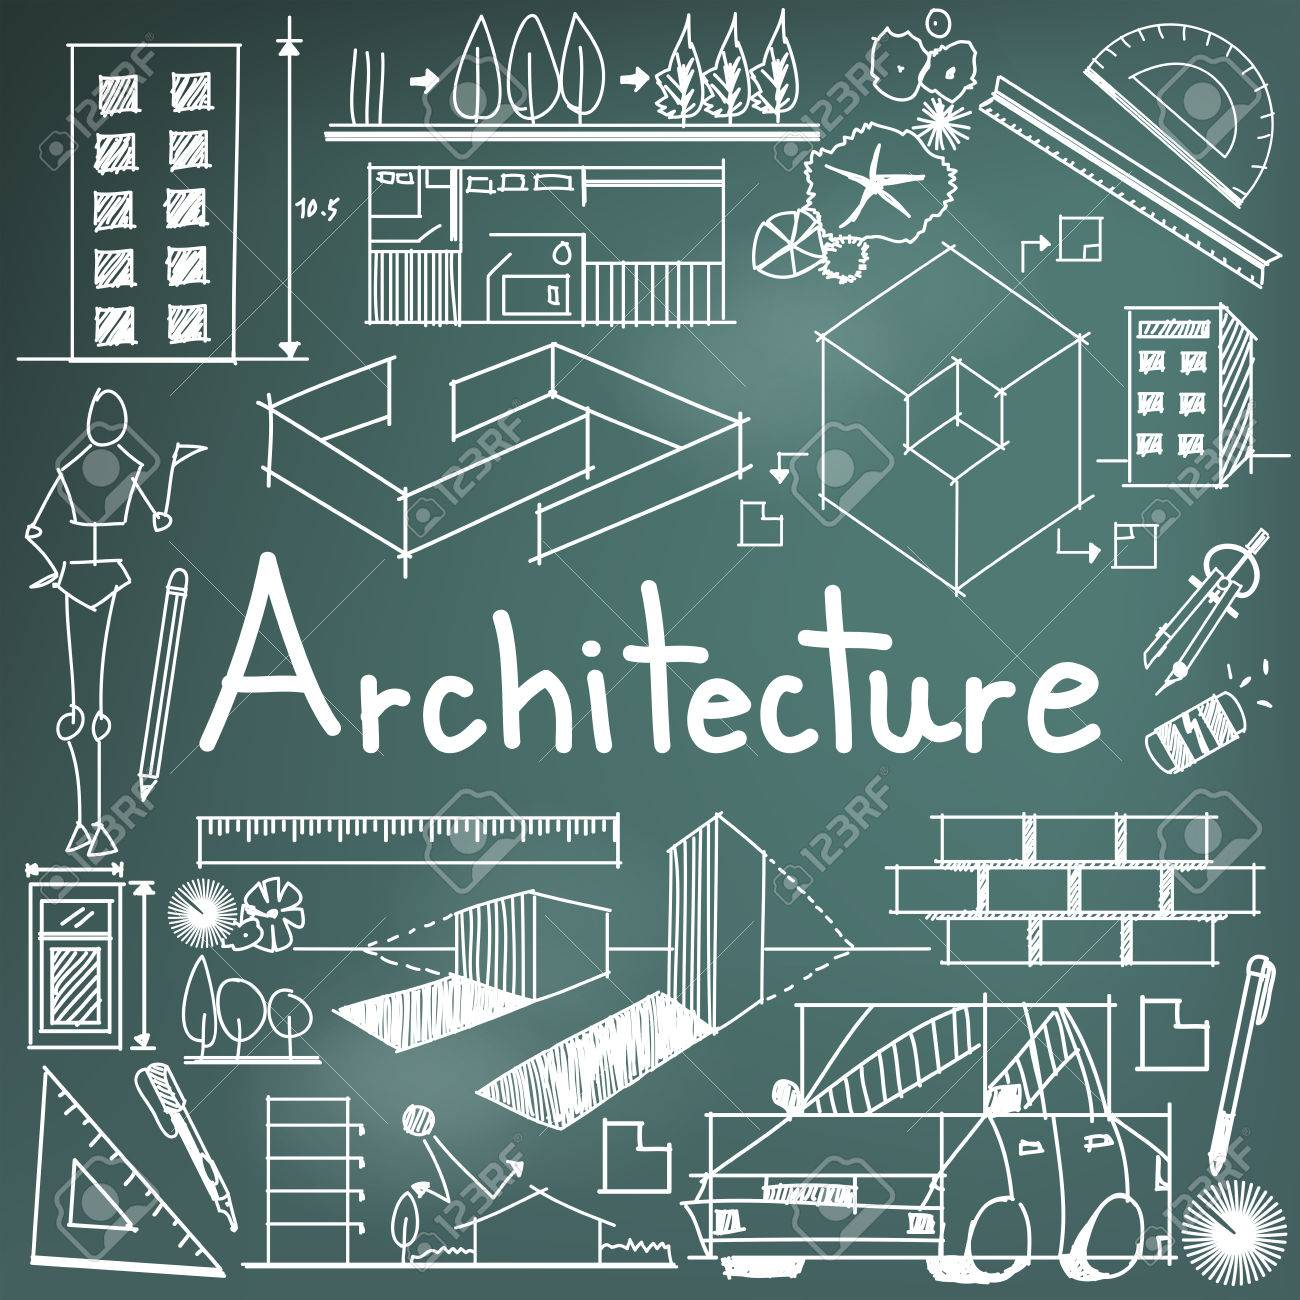 Architecture and architect design profession and building exterior architecture and architect design profession and building exterior blueprint handwriting doodle tool sign and symbol in malvernweather Images